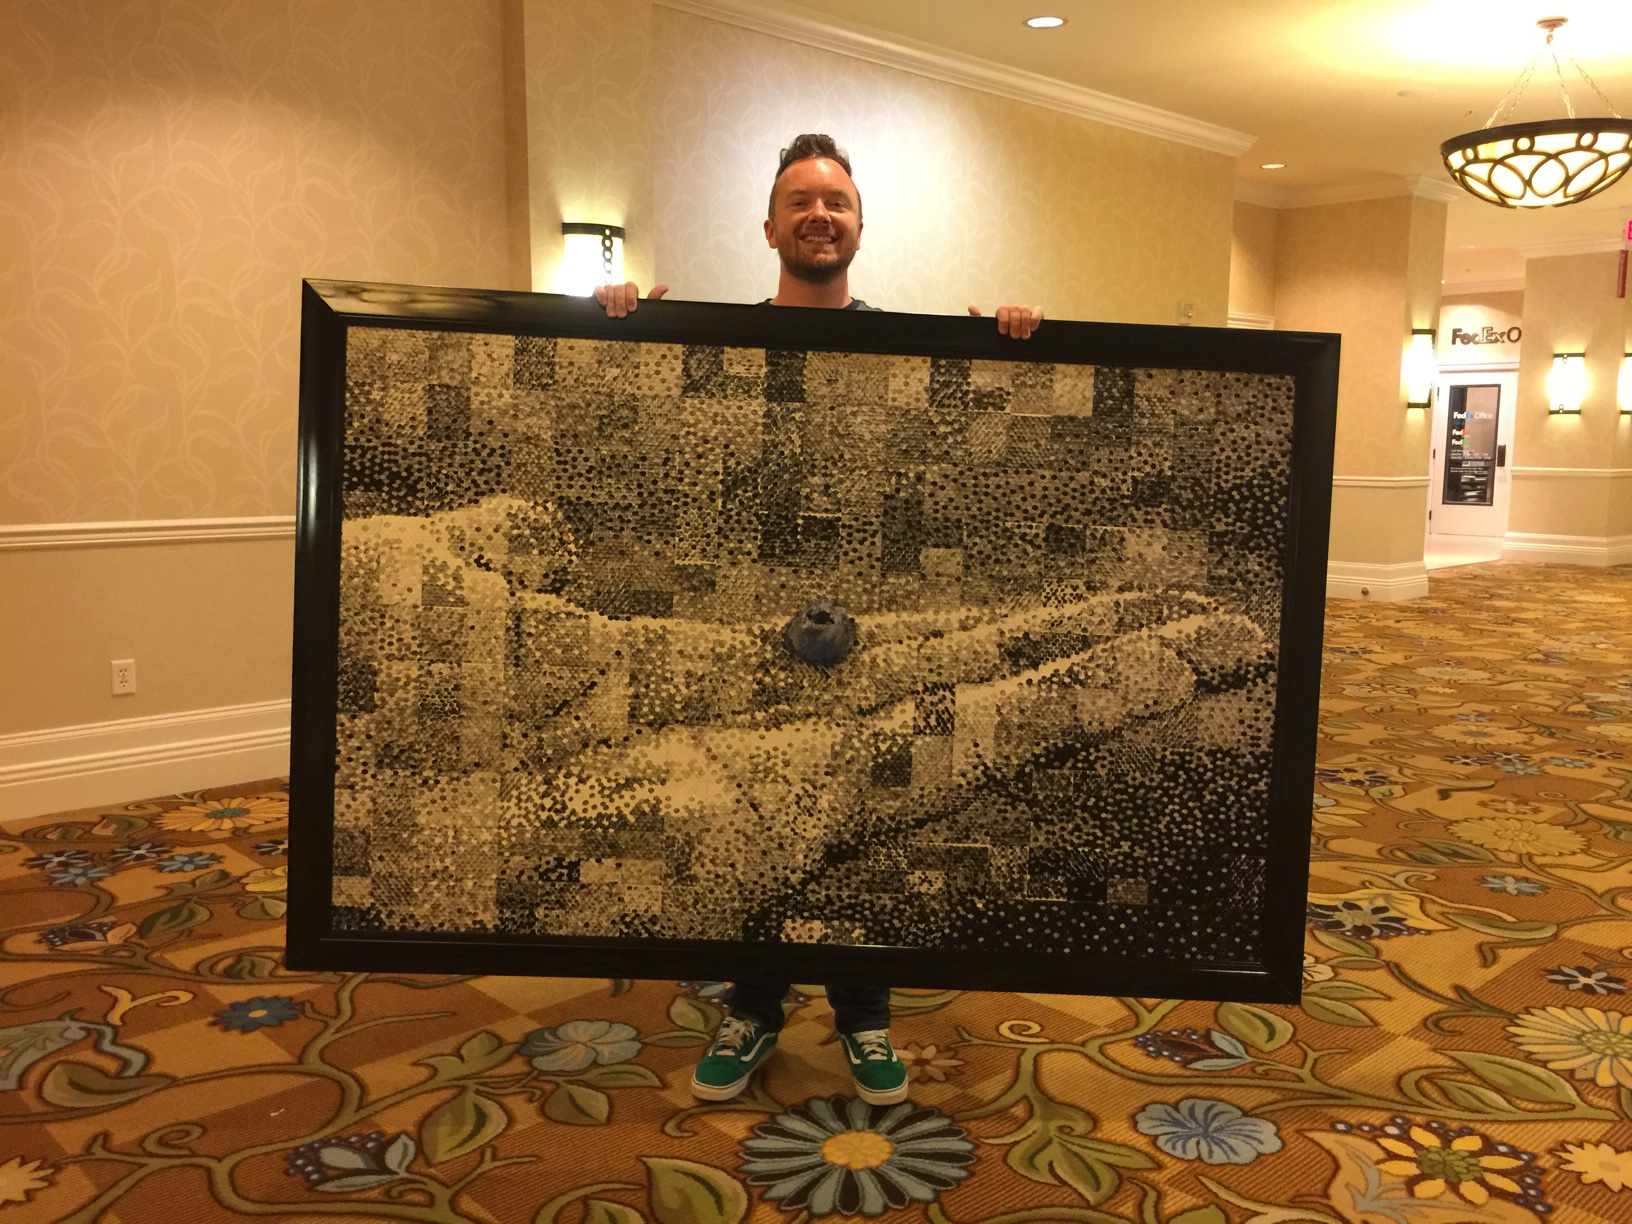 Phil with a custom image art